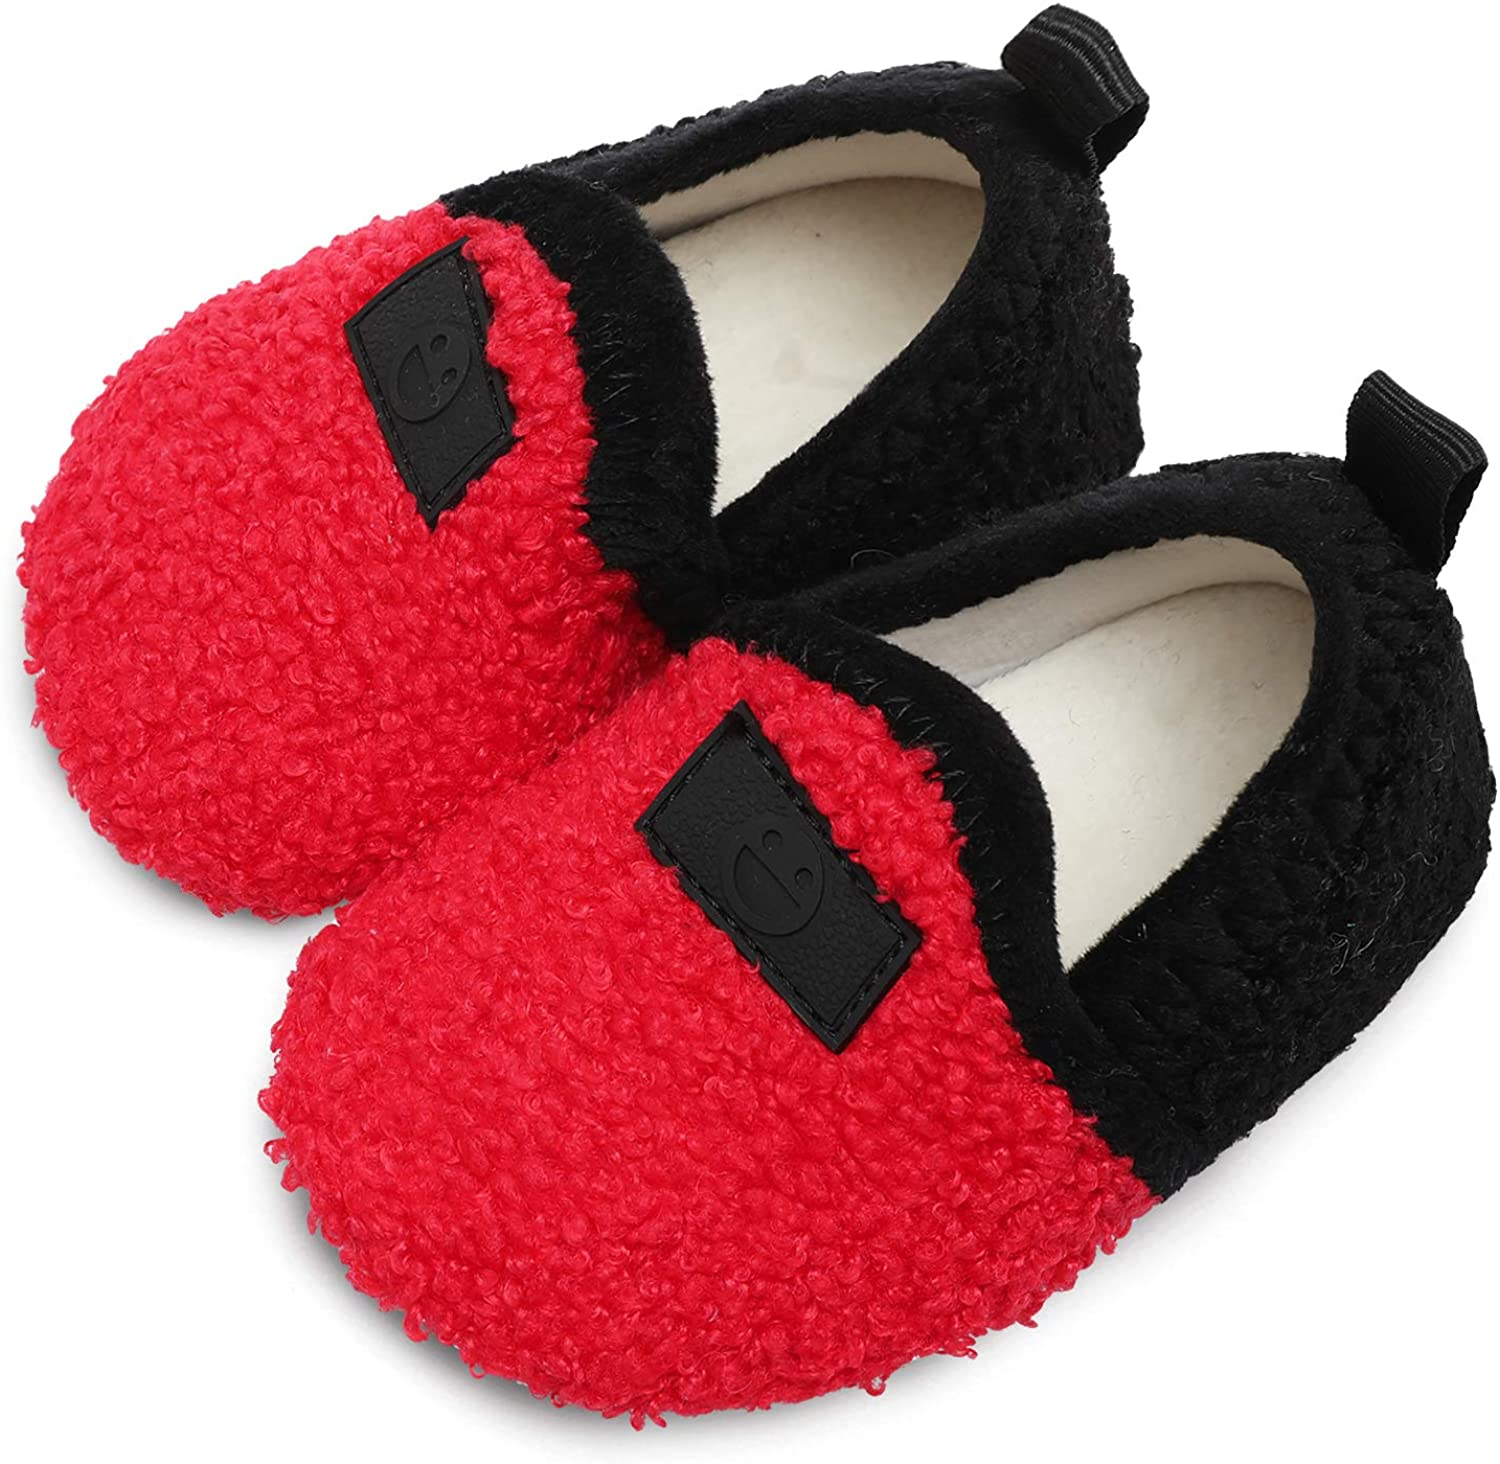 L-RUN Toddler Boys Girls House Slippers Indoor New product Home Warm Max 83% OFF Shoes S